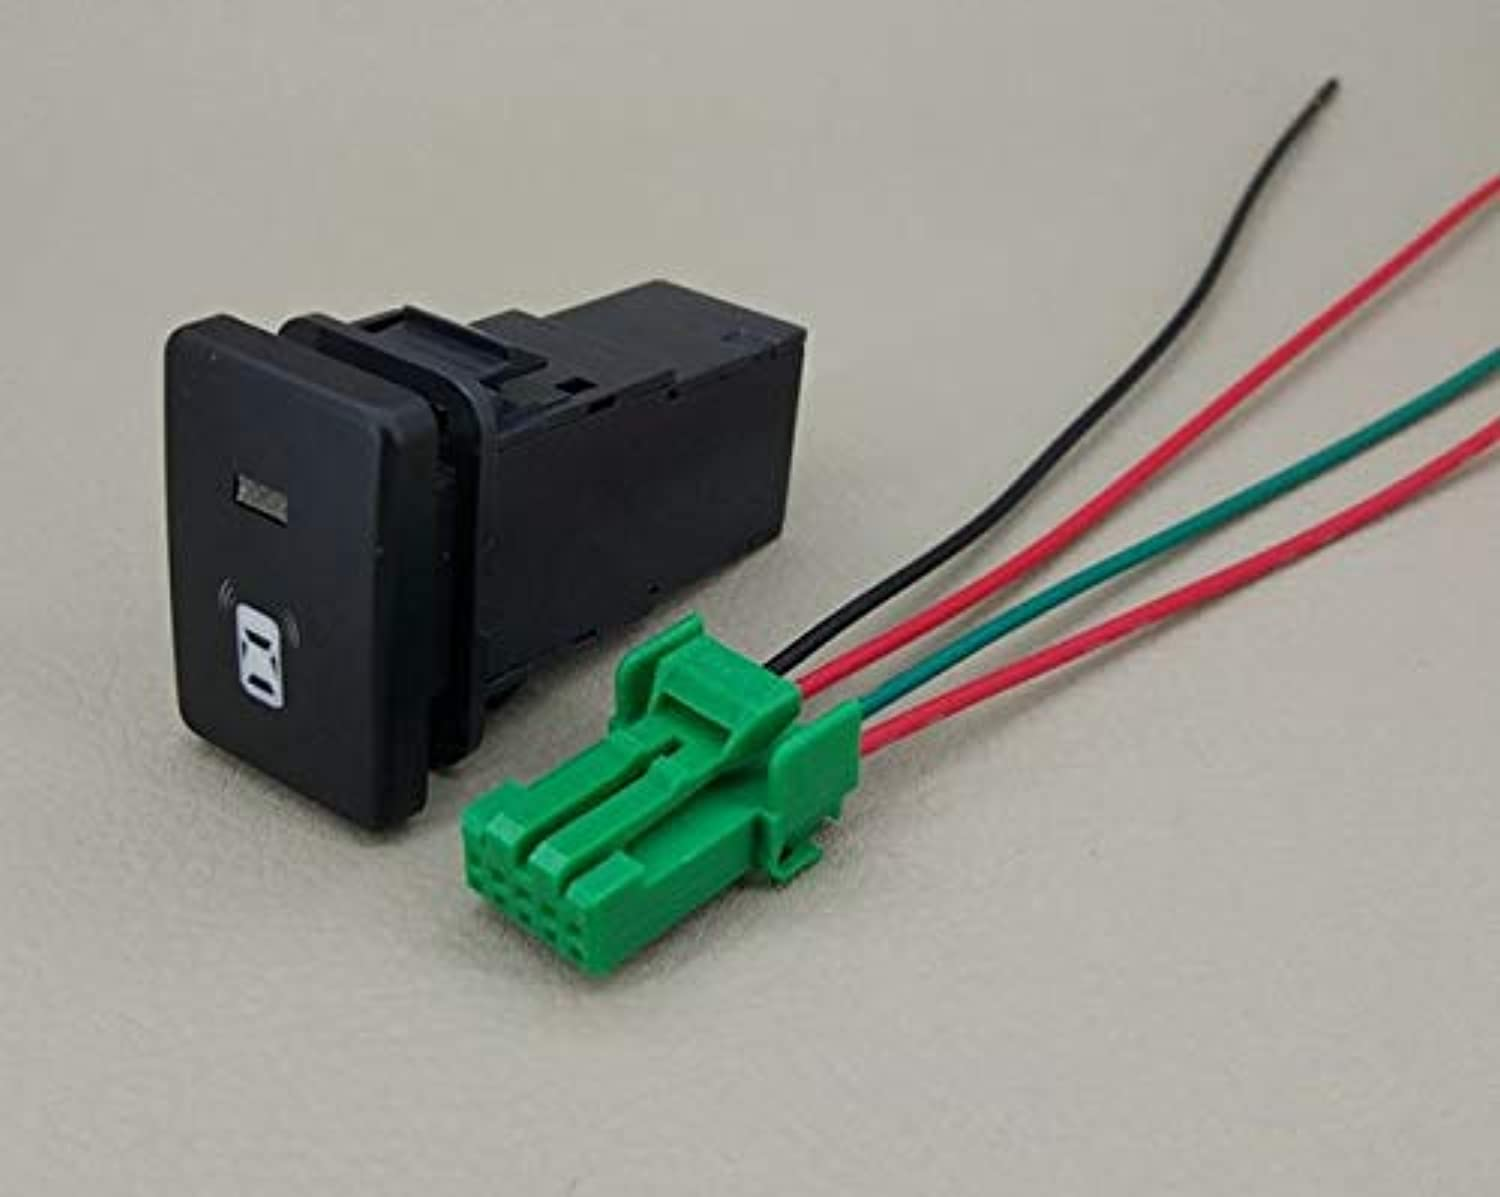 Cocas 4A 12V for Toyota Tundra Spotlight Button & Radar switches & Front Fog Lights switches & DRL Switch & LED Switch